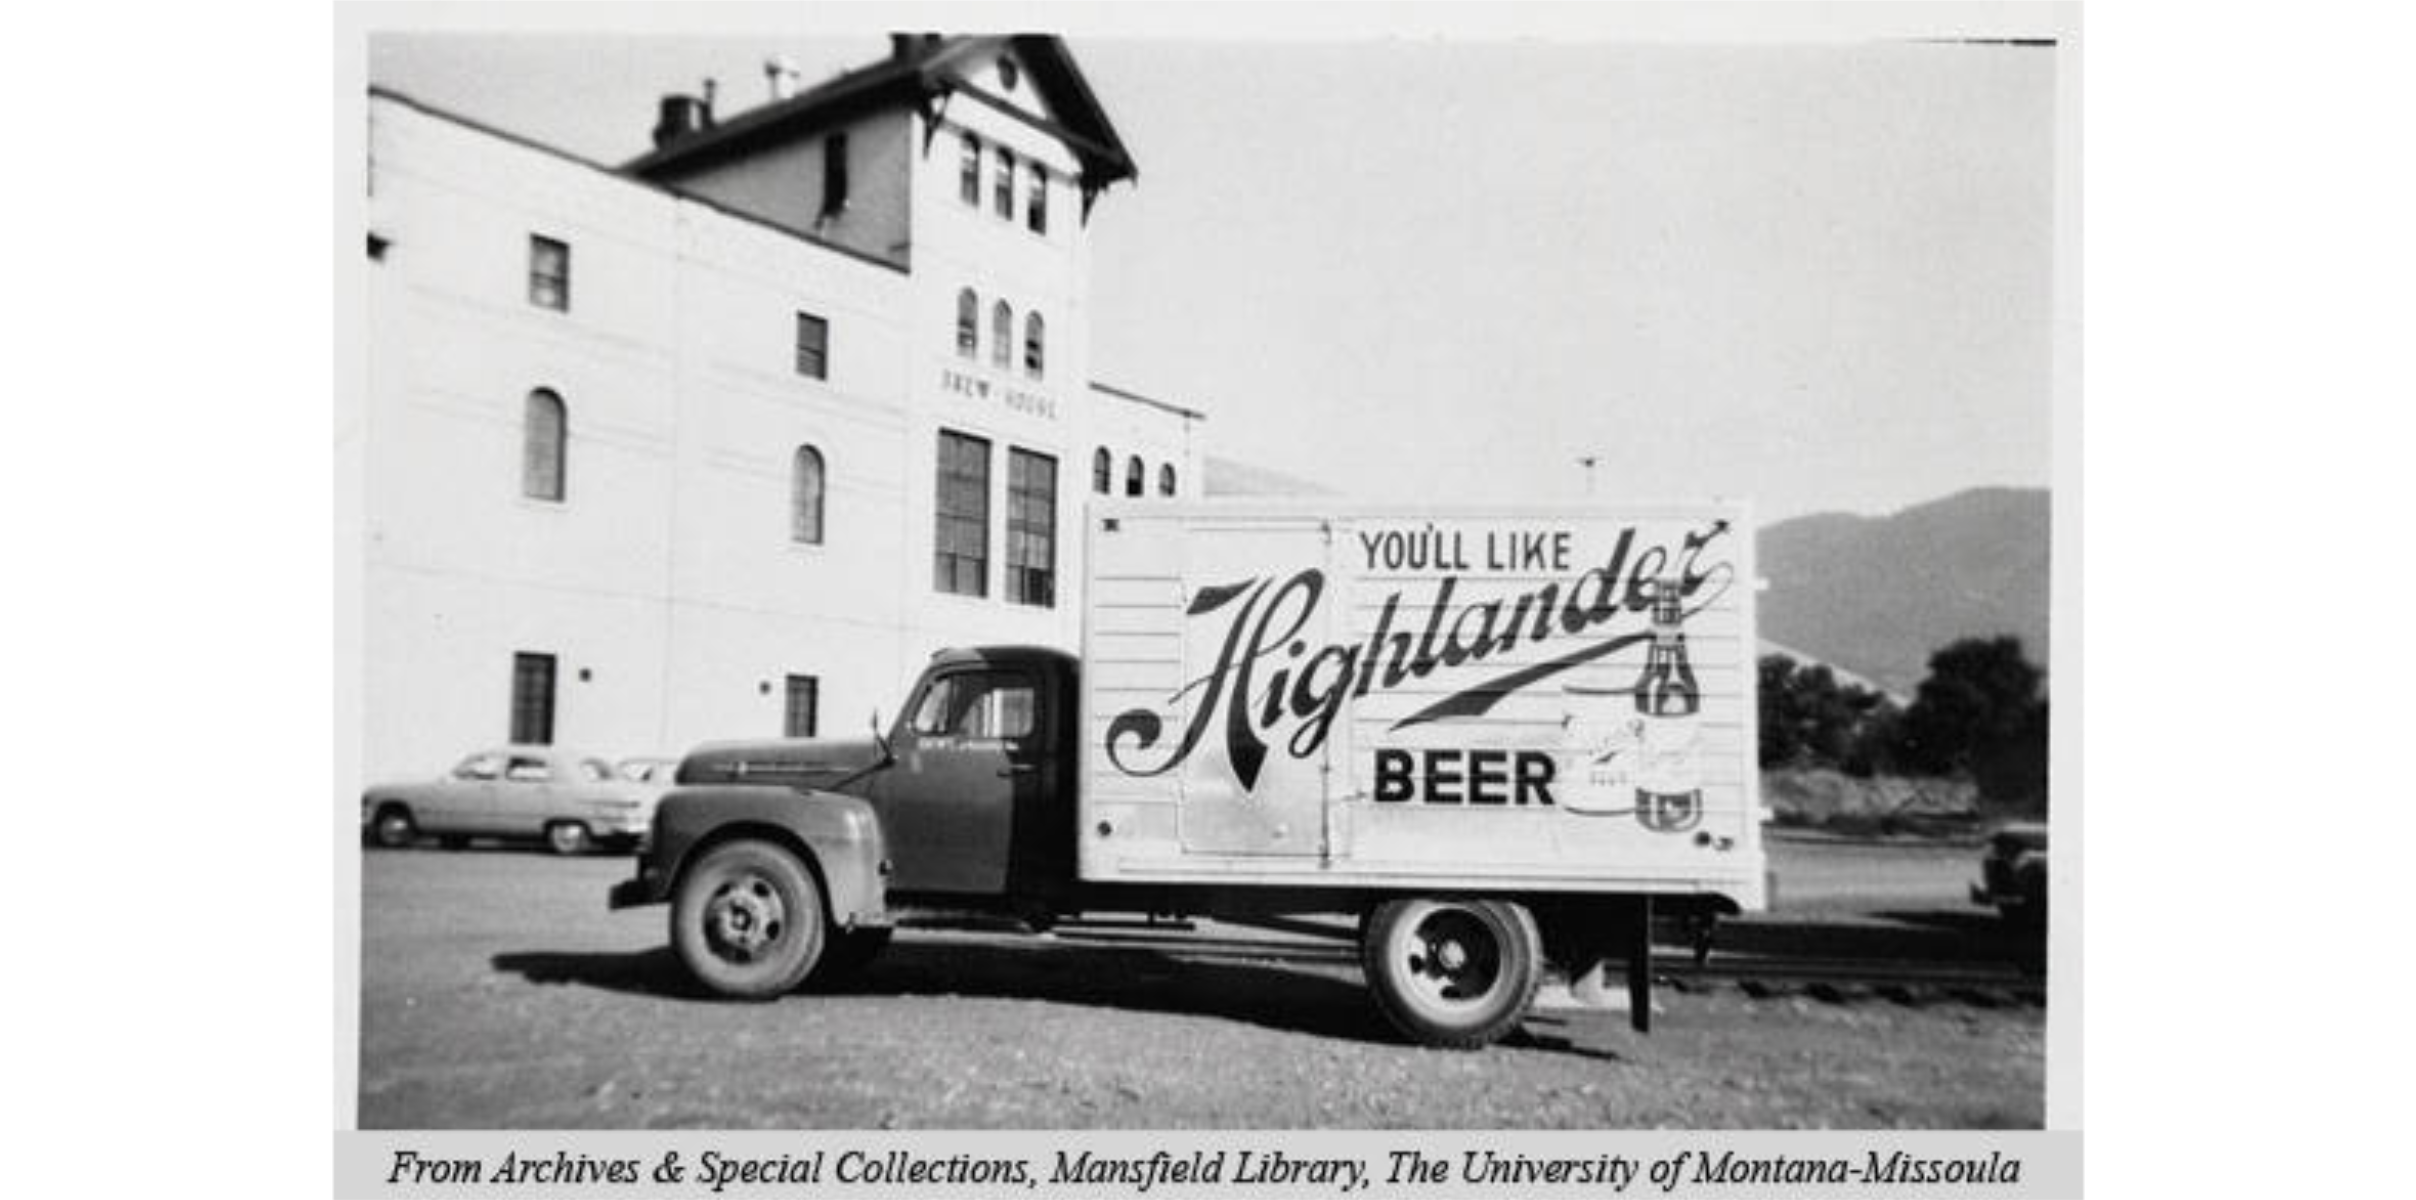 Highlander Beer truck circa 1960 - trucks like this could be spotted around the state, delivering the iconic beer